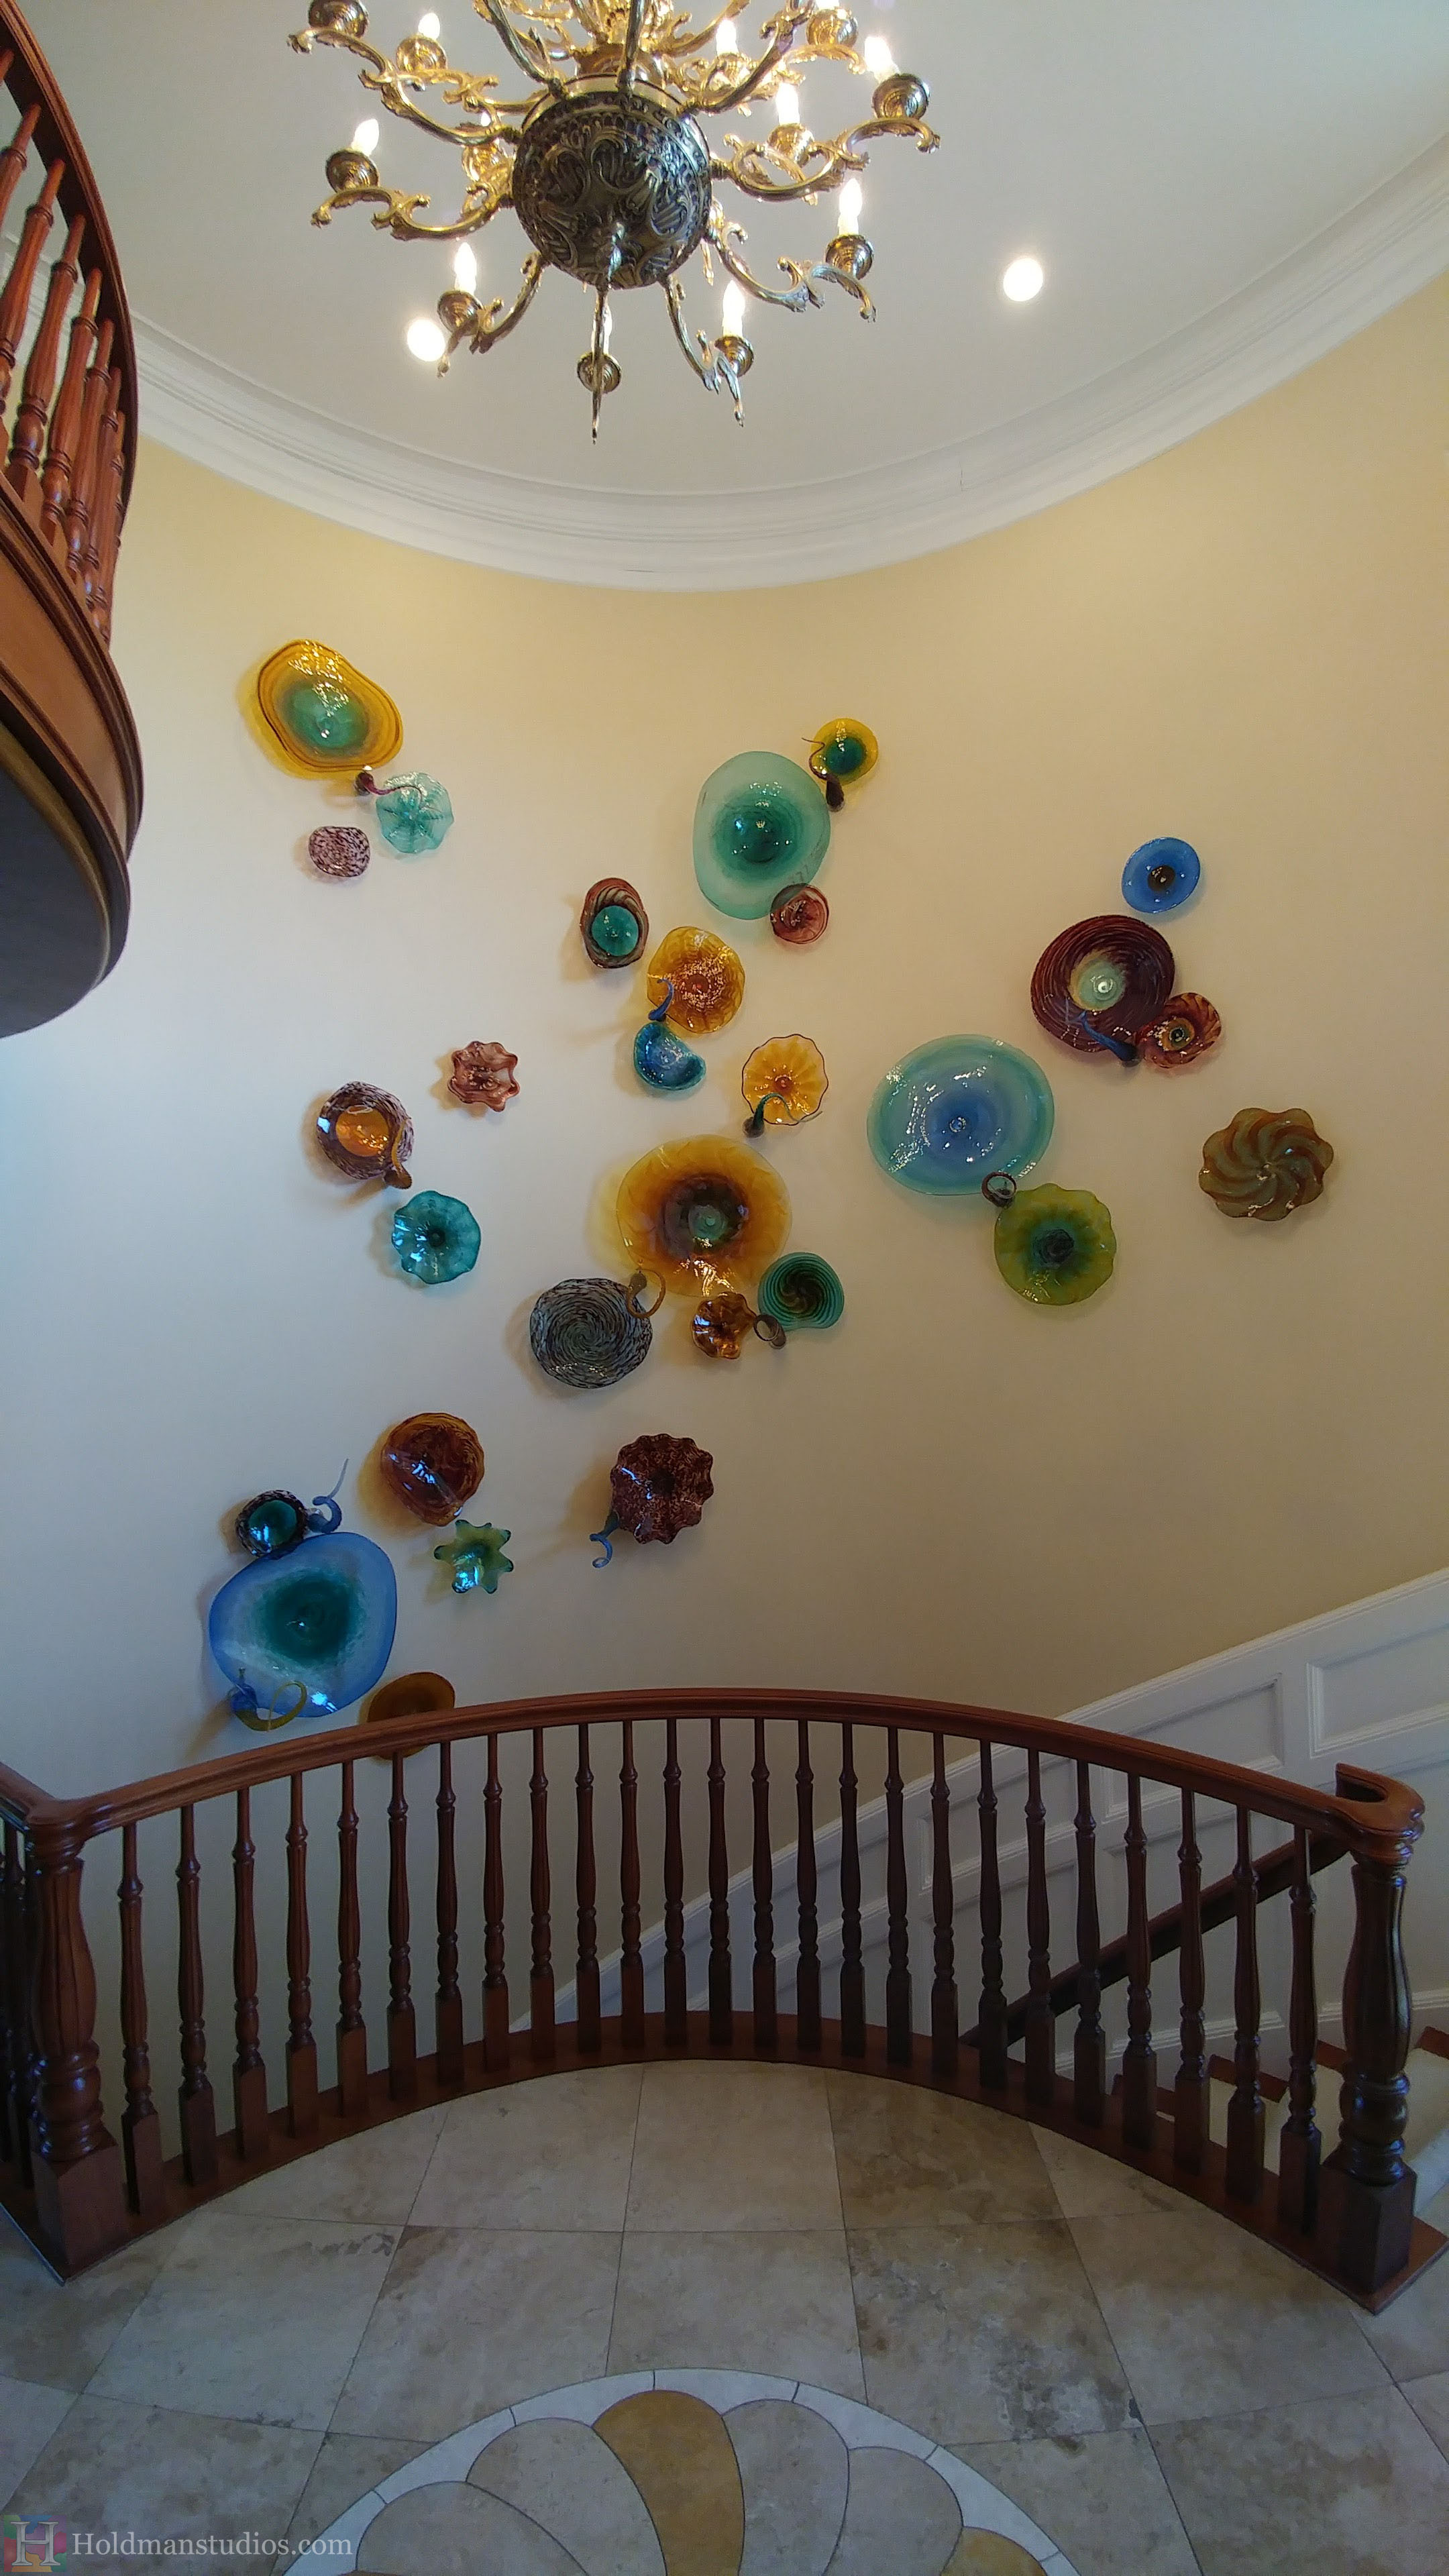 holdman-studios-hand-blown-glass-platters-bowls-tendrils-stair-wall-display.jpg